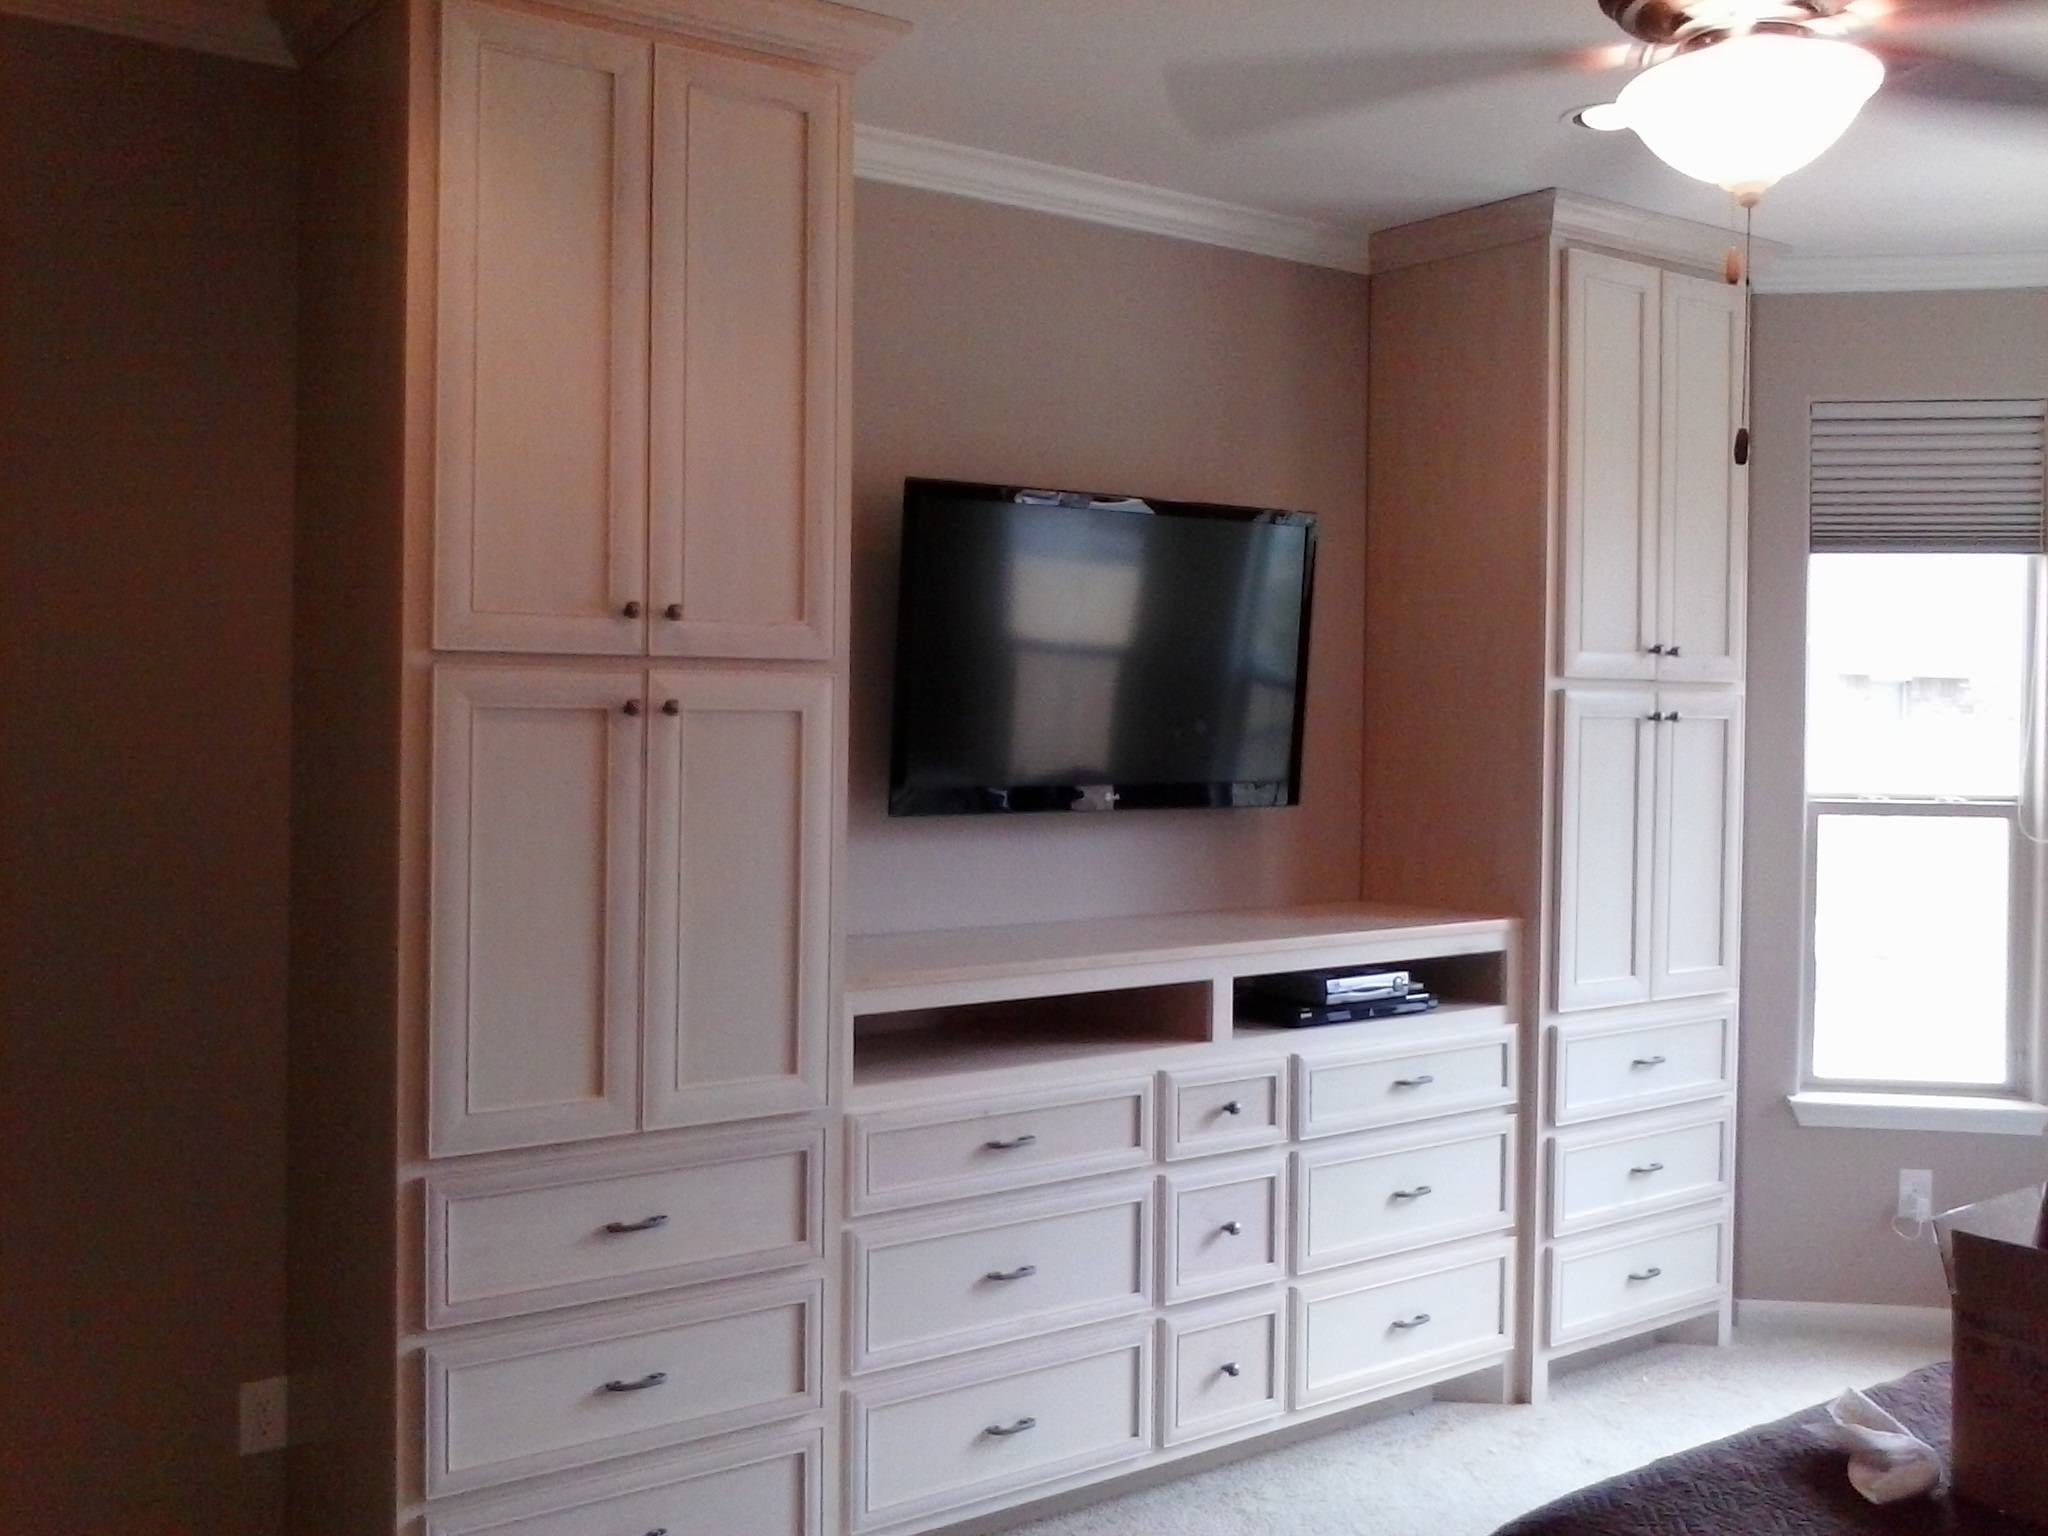 Superior Image Of: Bedroom Wall Units With Drawers And TV